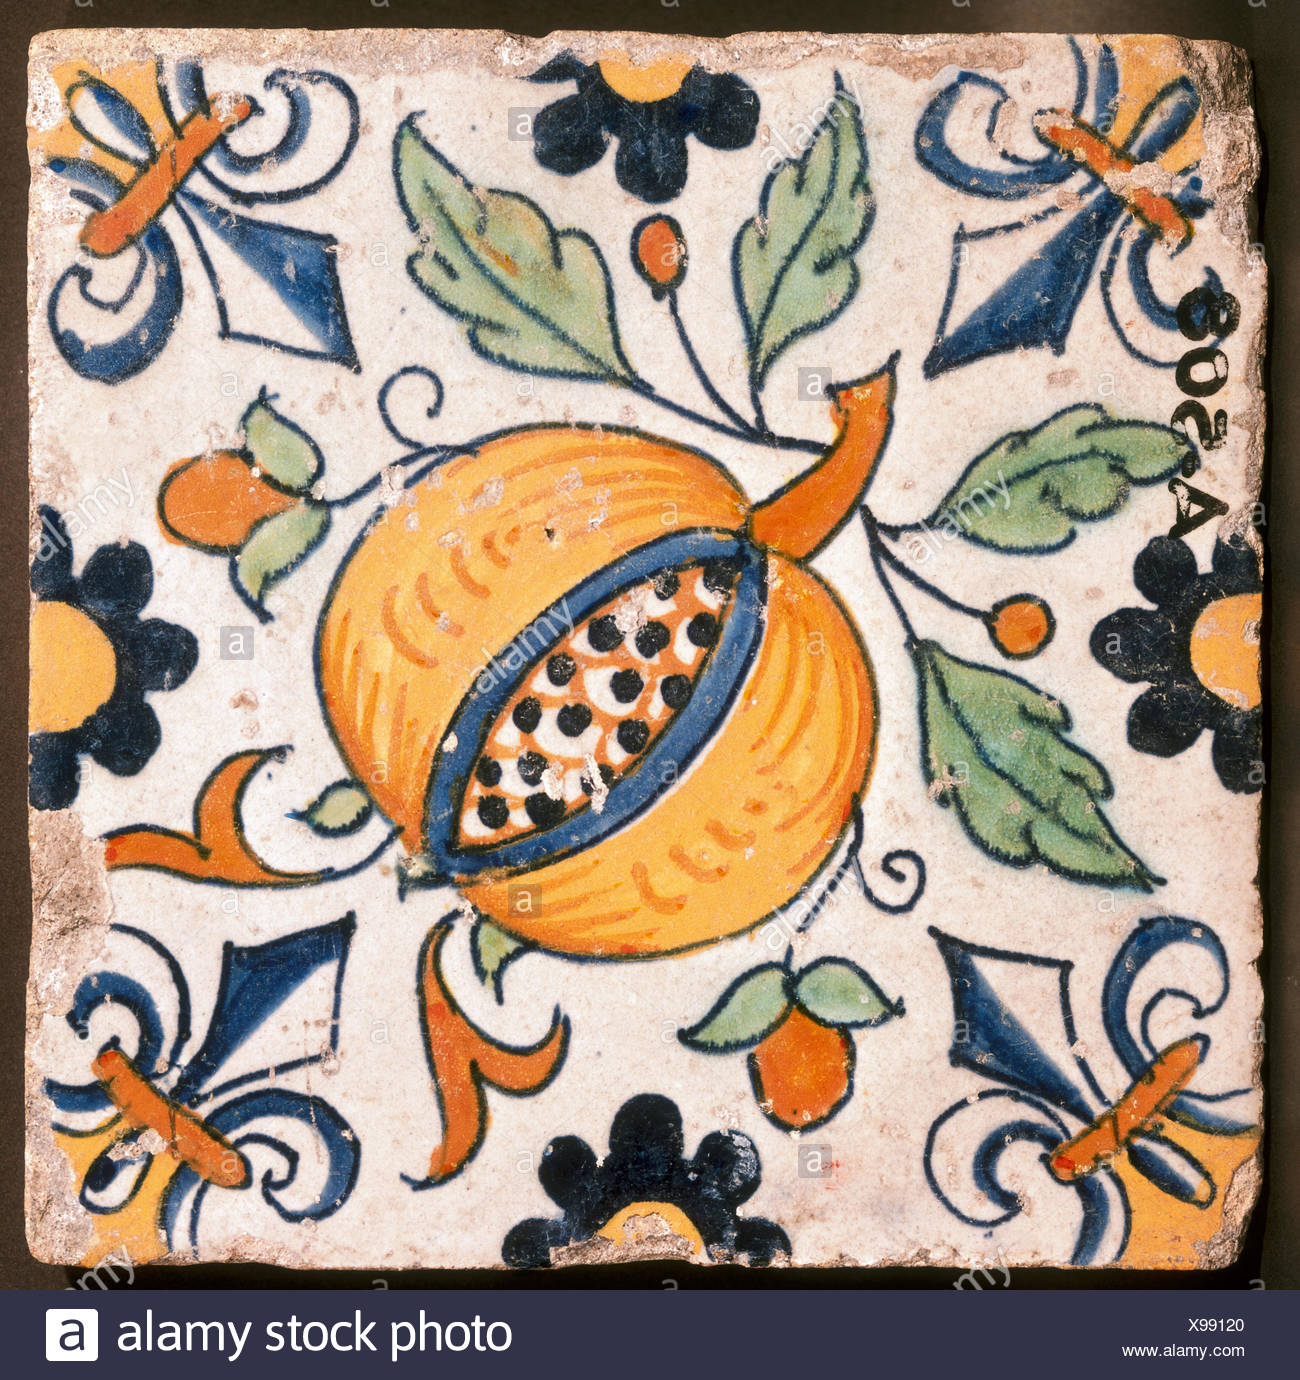 fine arts, decorative tiles, tile, painted, Delft, early 17th century, 13 x 13 cm, Rijksmuseum H.L. van Meerten, Delft, Artist's Copyright has not to be cleared - Stock Image